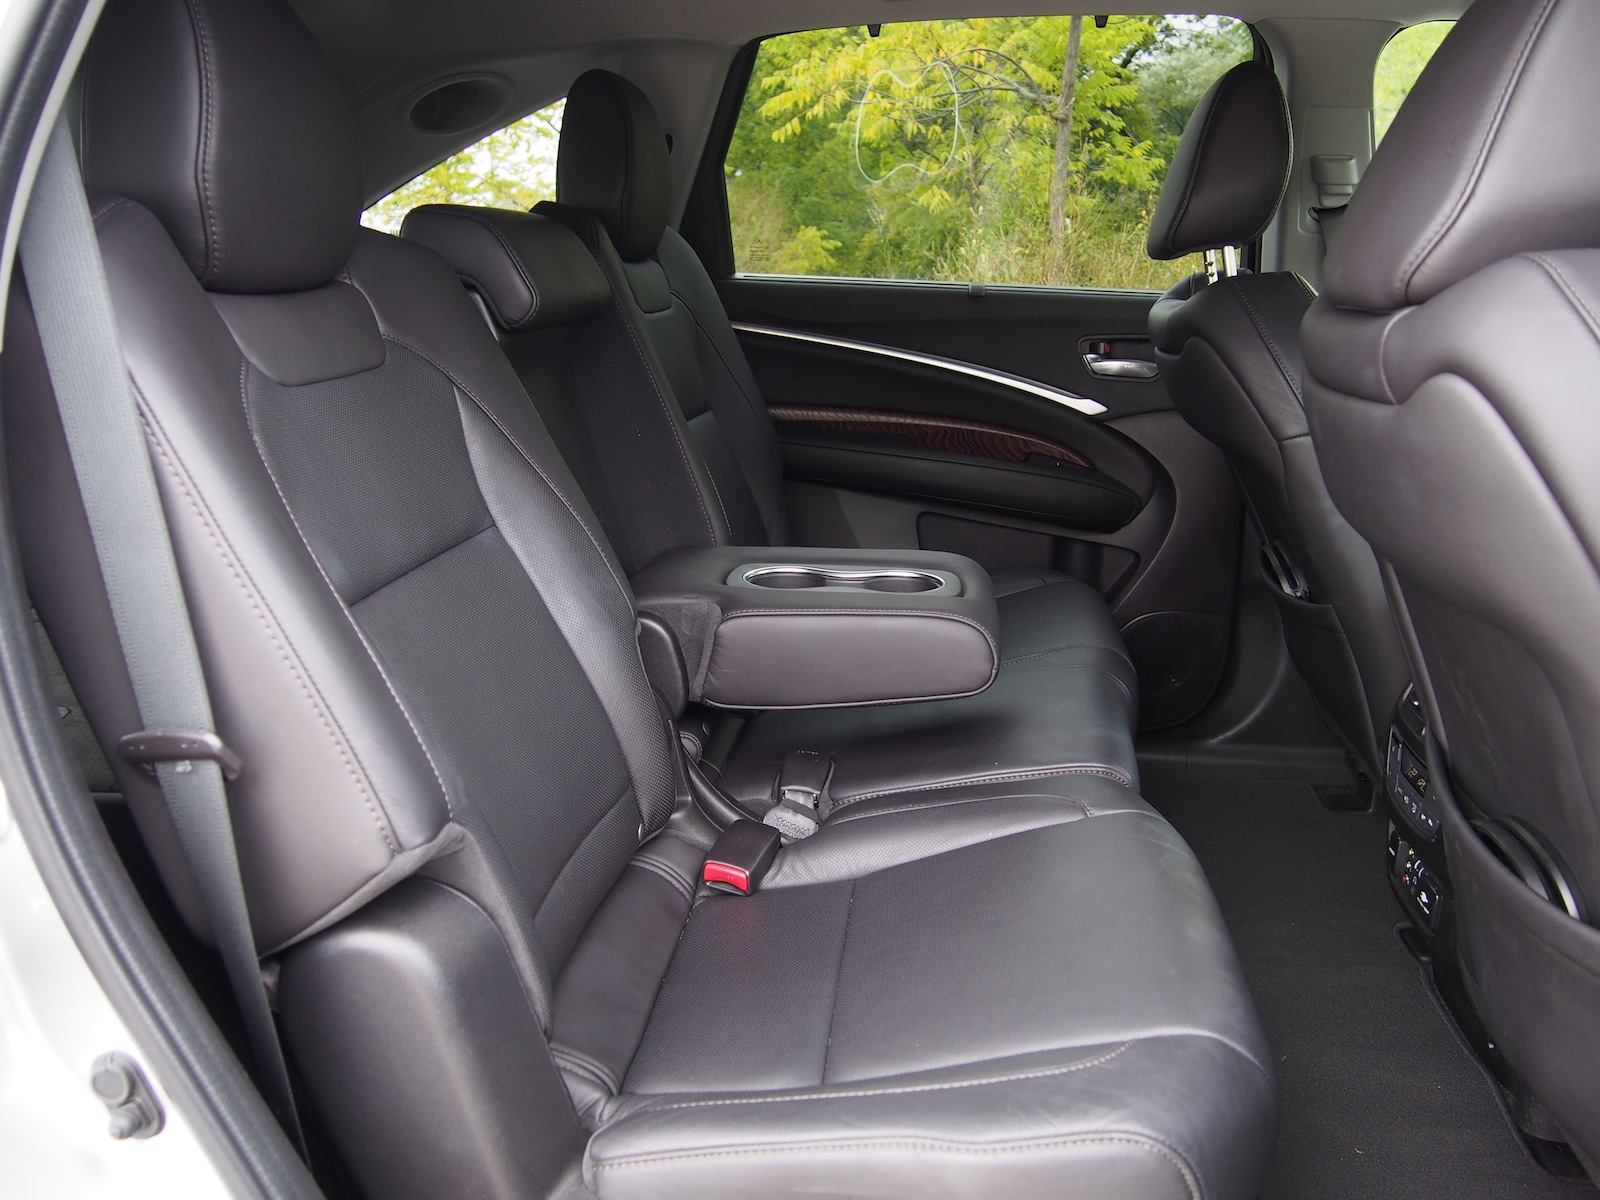 2014 Acura MDX Elite Review - Cars, Photos, Test Drives ...